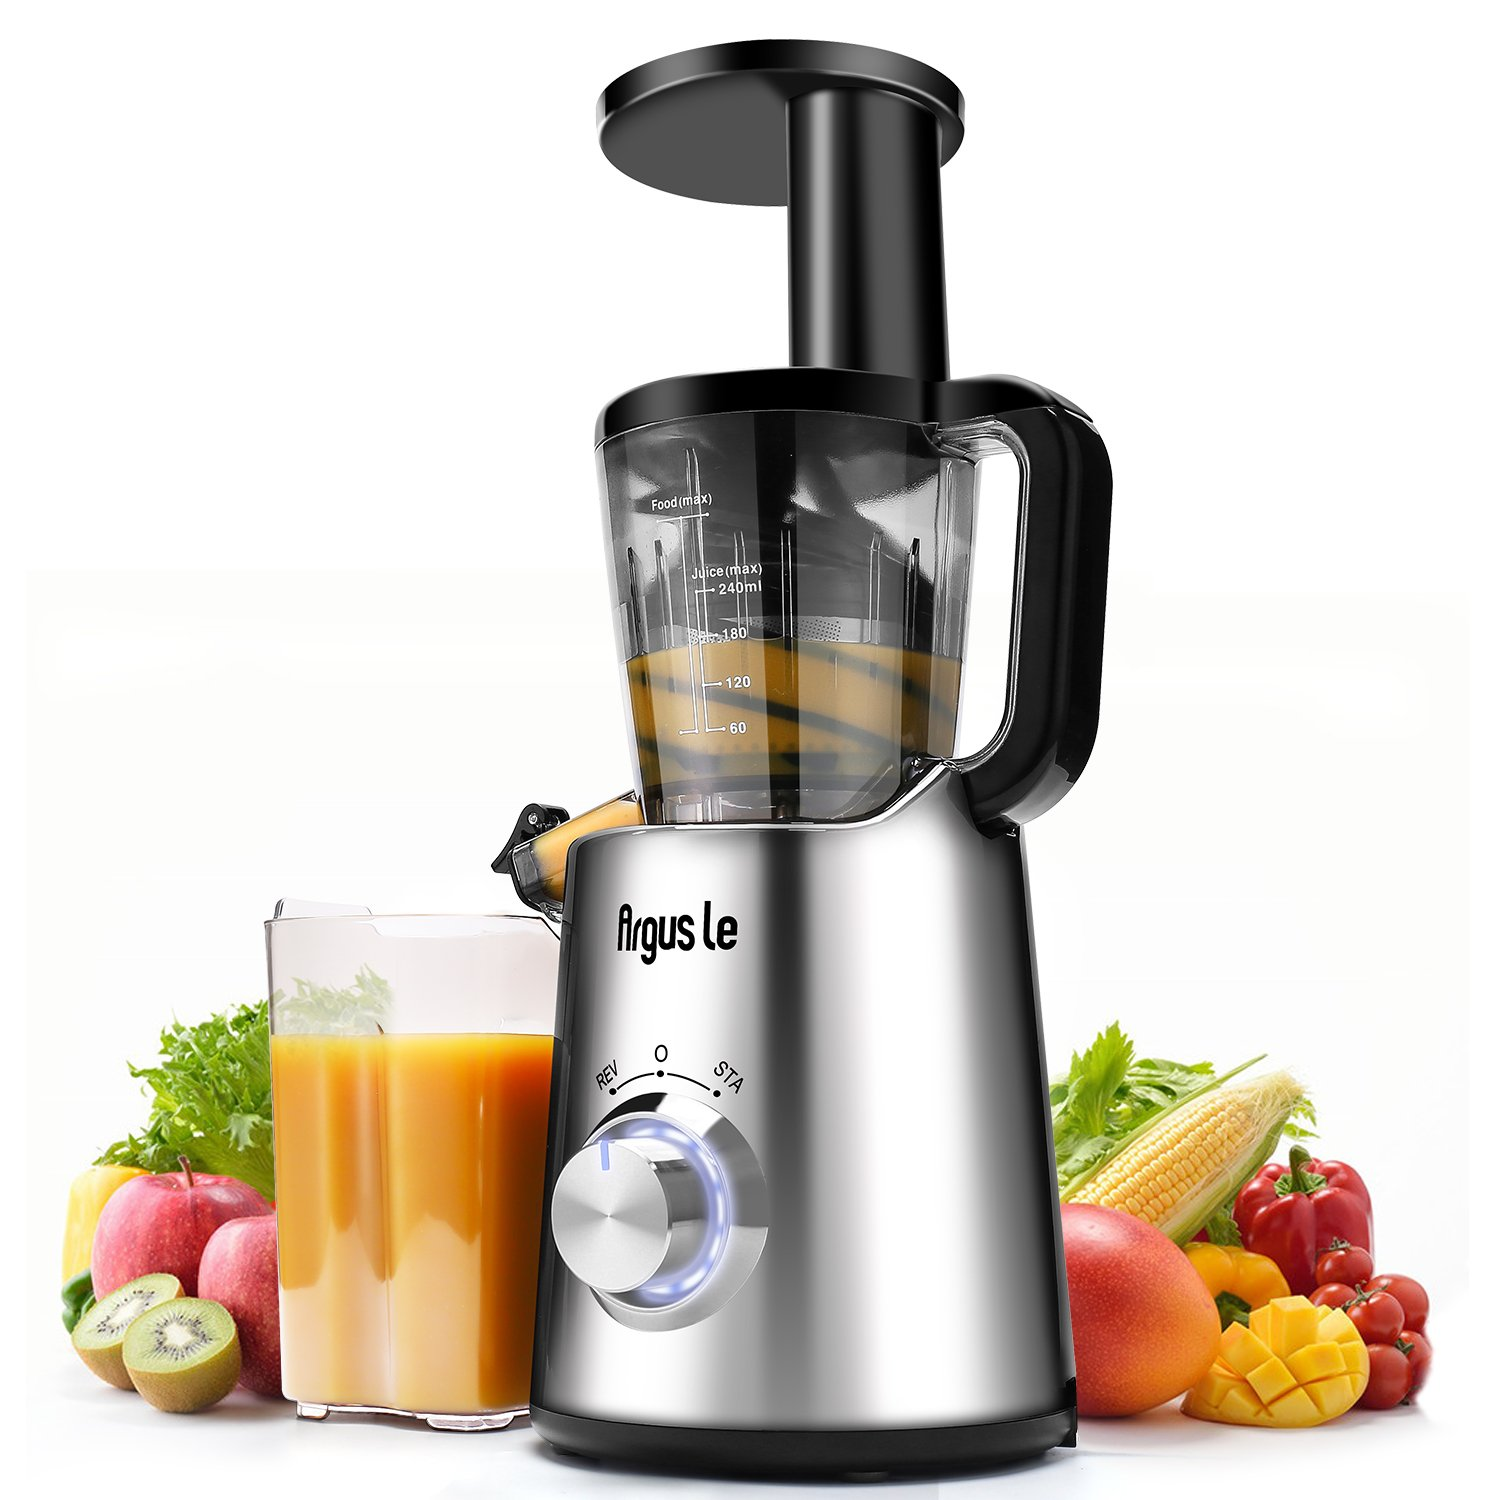 Argus Le Slow Juicer, High Nutrient and Juice Yield Masticatng Juicer, Quick Clean Cold Press Juice Extractor, Fruit and Vegetable Juicer Machine Review